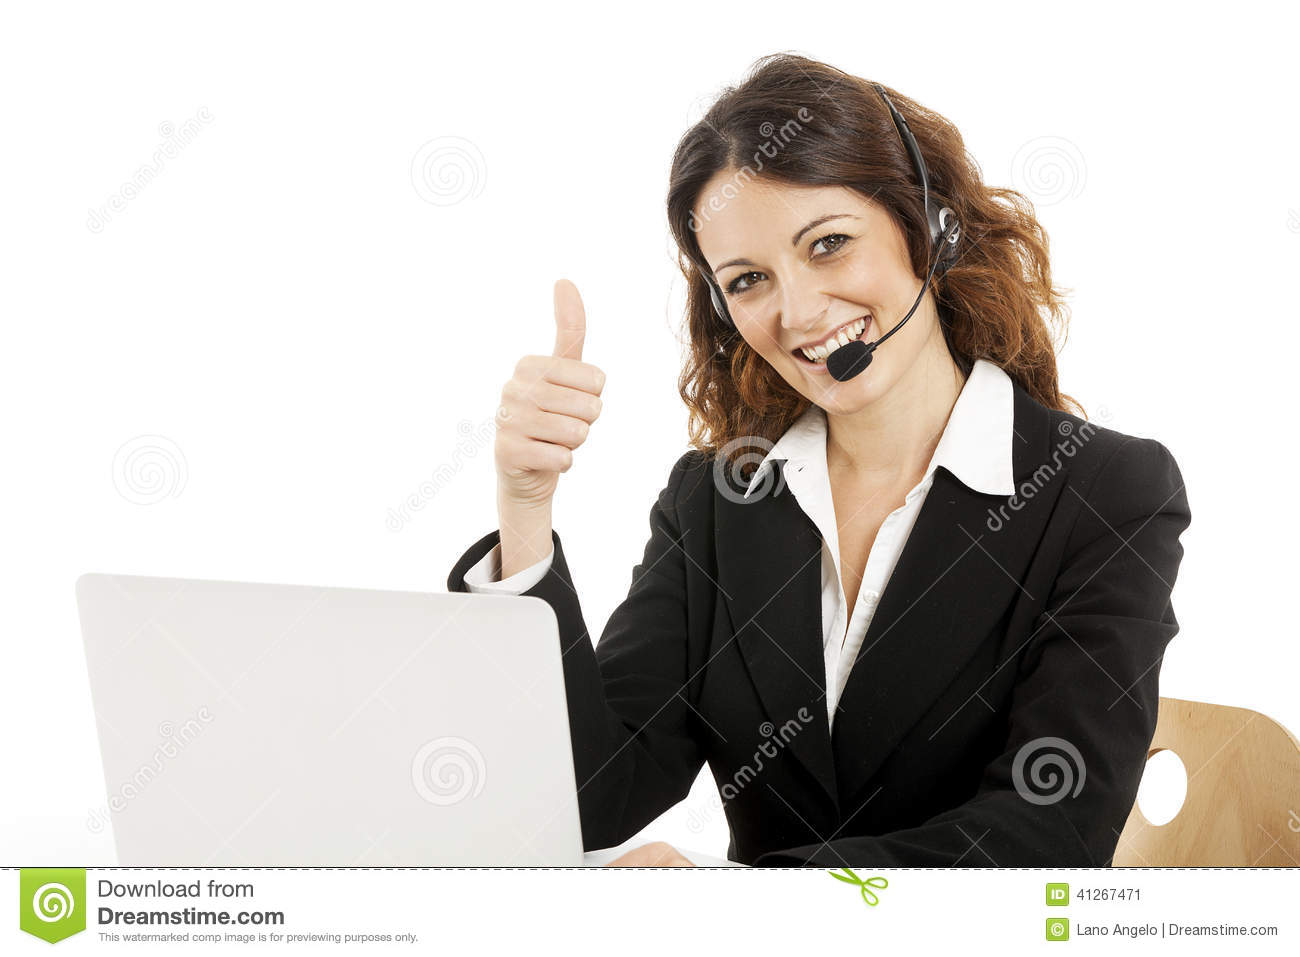 stock photograph with watermark depicting a smiling woman in a phone headset